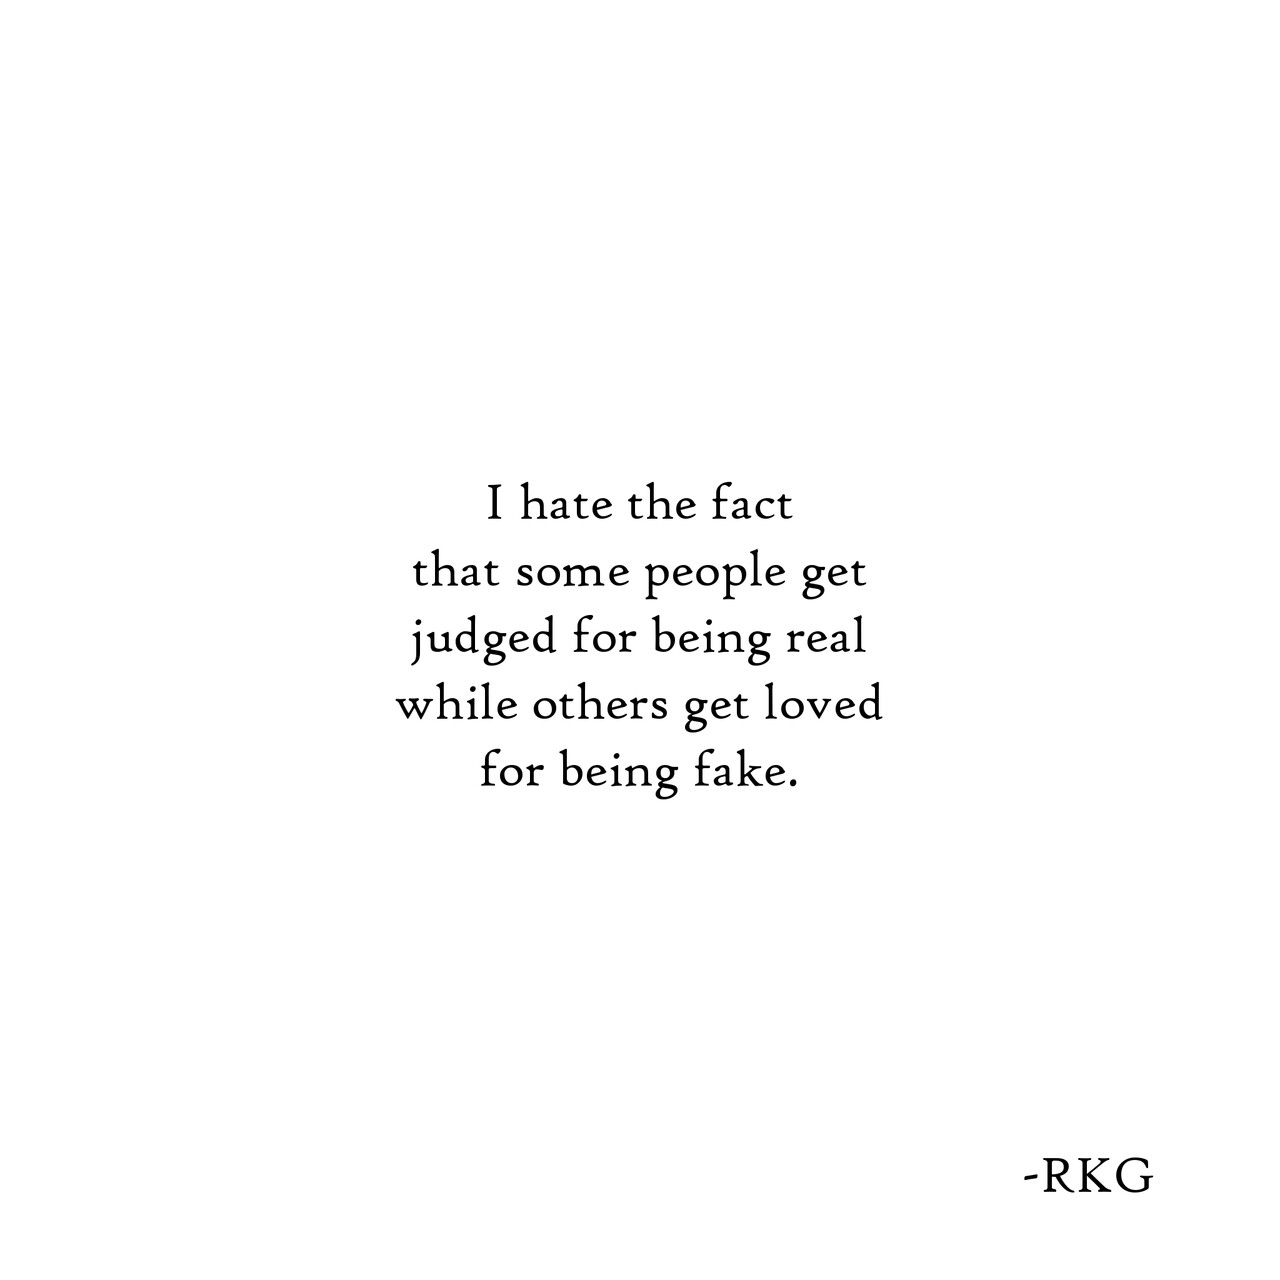 I hate the fact that some people get judged for being real ...